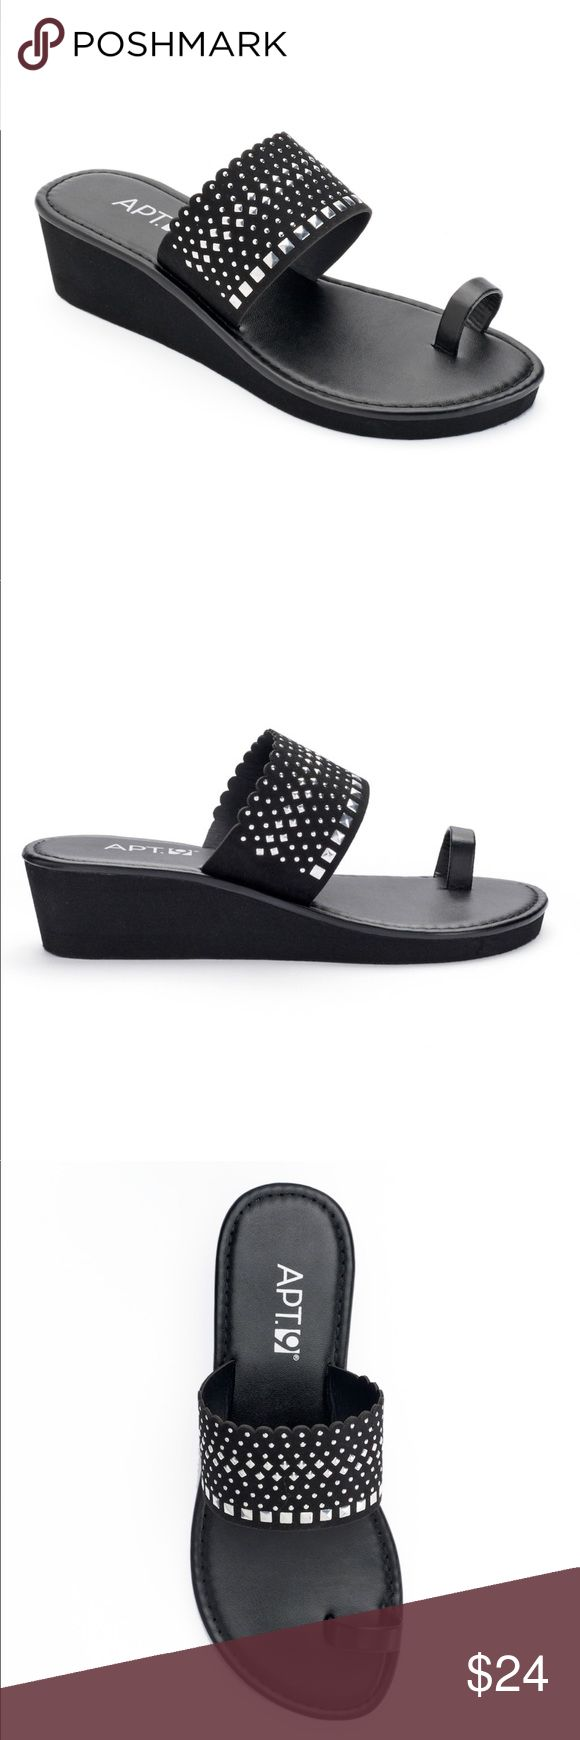 Apt. 9 Studded Wedge Flip-Flops Black New Decorated with silver-tone studs in a mix of shapes and sizes, these women's Apt. 9 sandals add a fashionable touch to your warm-weather wardrobe.  SANDAL FEATURES •Silver-tone studs •Toe loop  SANDAL CONSTRUCTION •Polyester faux-leather upper •EVA outsole  SANDAL DETAILS •Open toe •Slip on •1.5-in. heel •Wipe clean  Sizes: XL (11)  New with tags. Apt. 9 Shoes Sandals